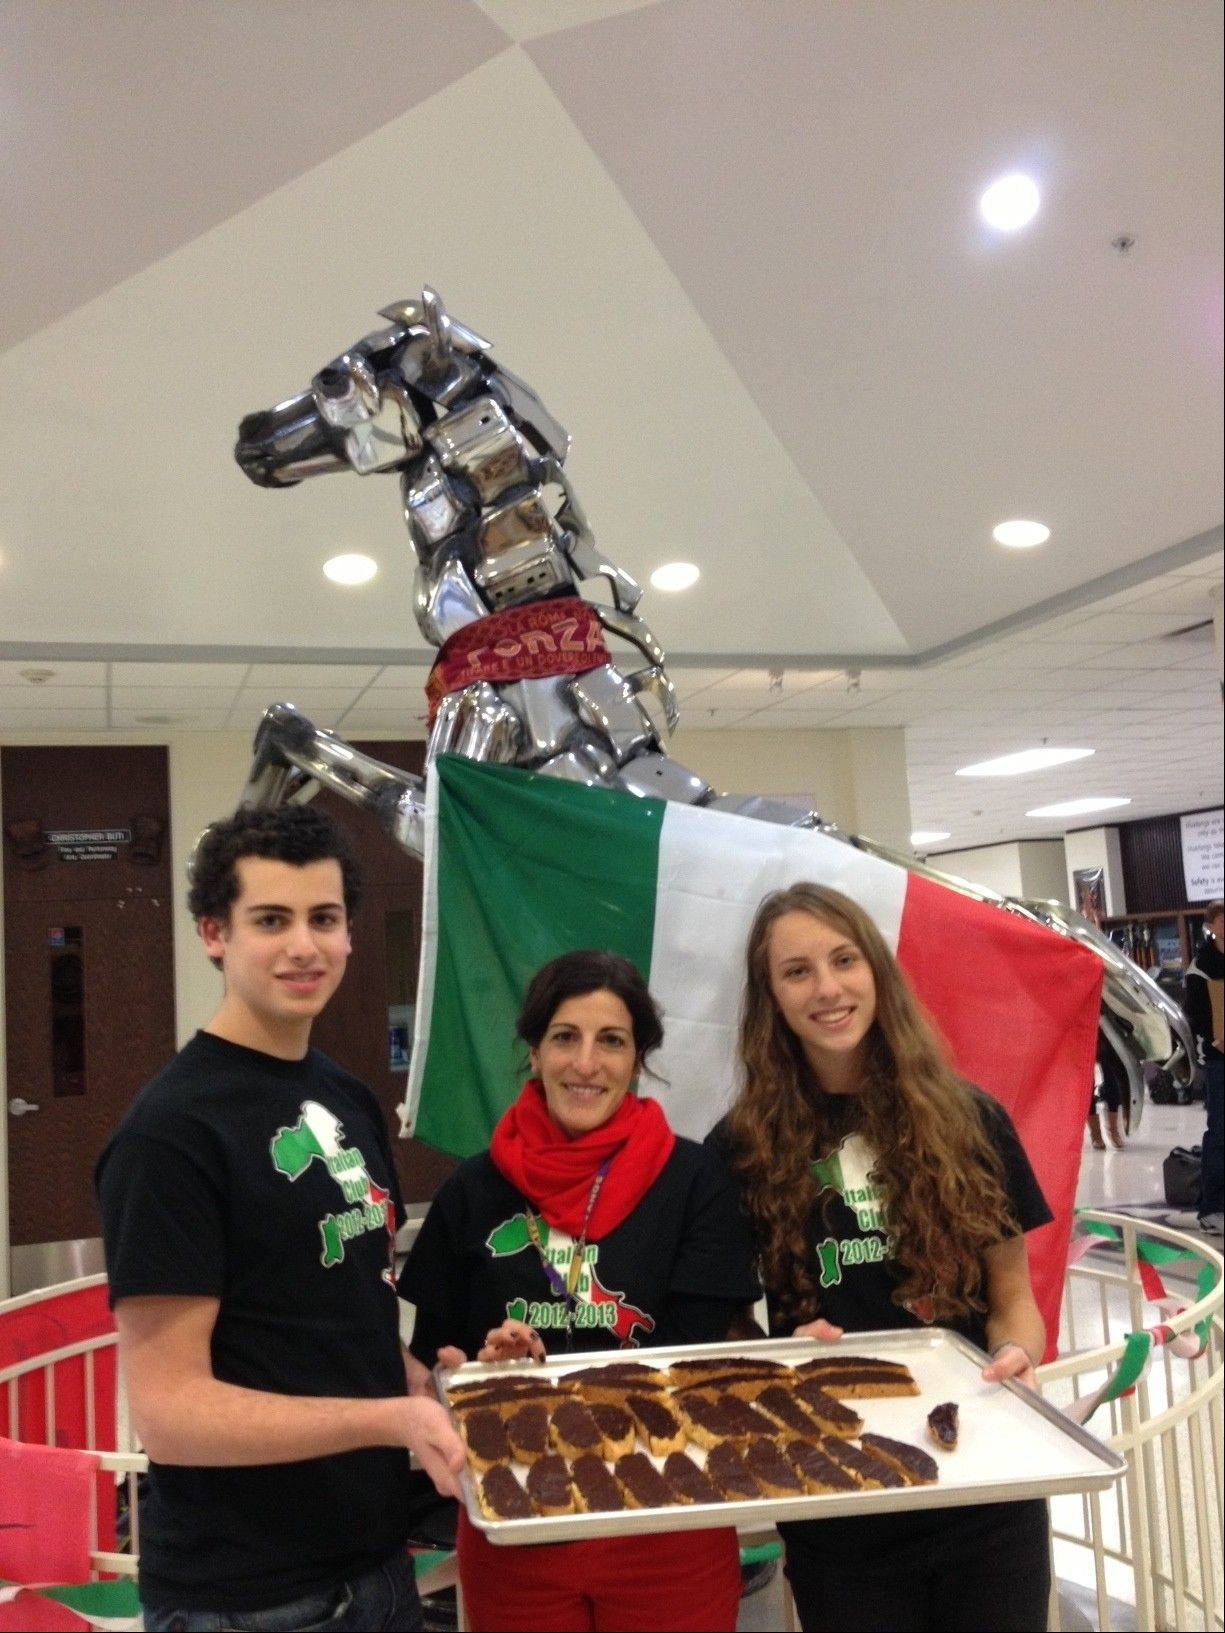 Pictured, from left, are Italian Club secretary James Rooney, Rolling Meadows High School teacher Tona Costello and Italian Club secretary Mary Collins.